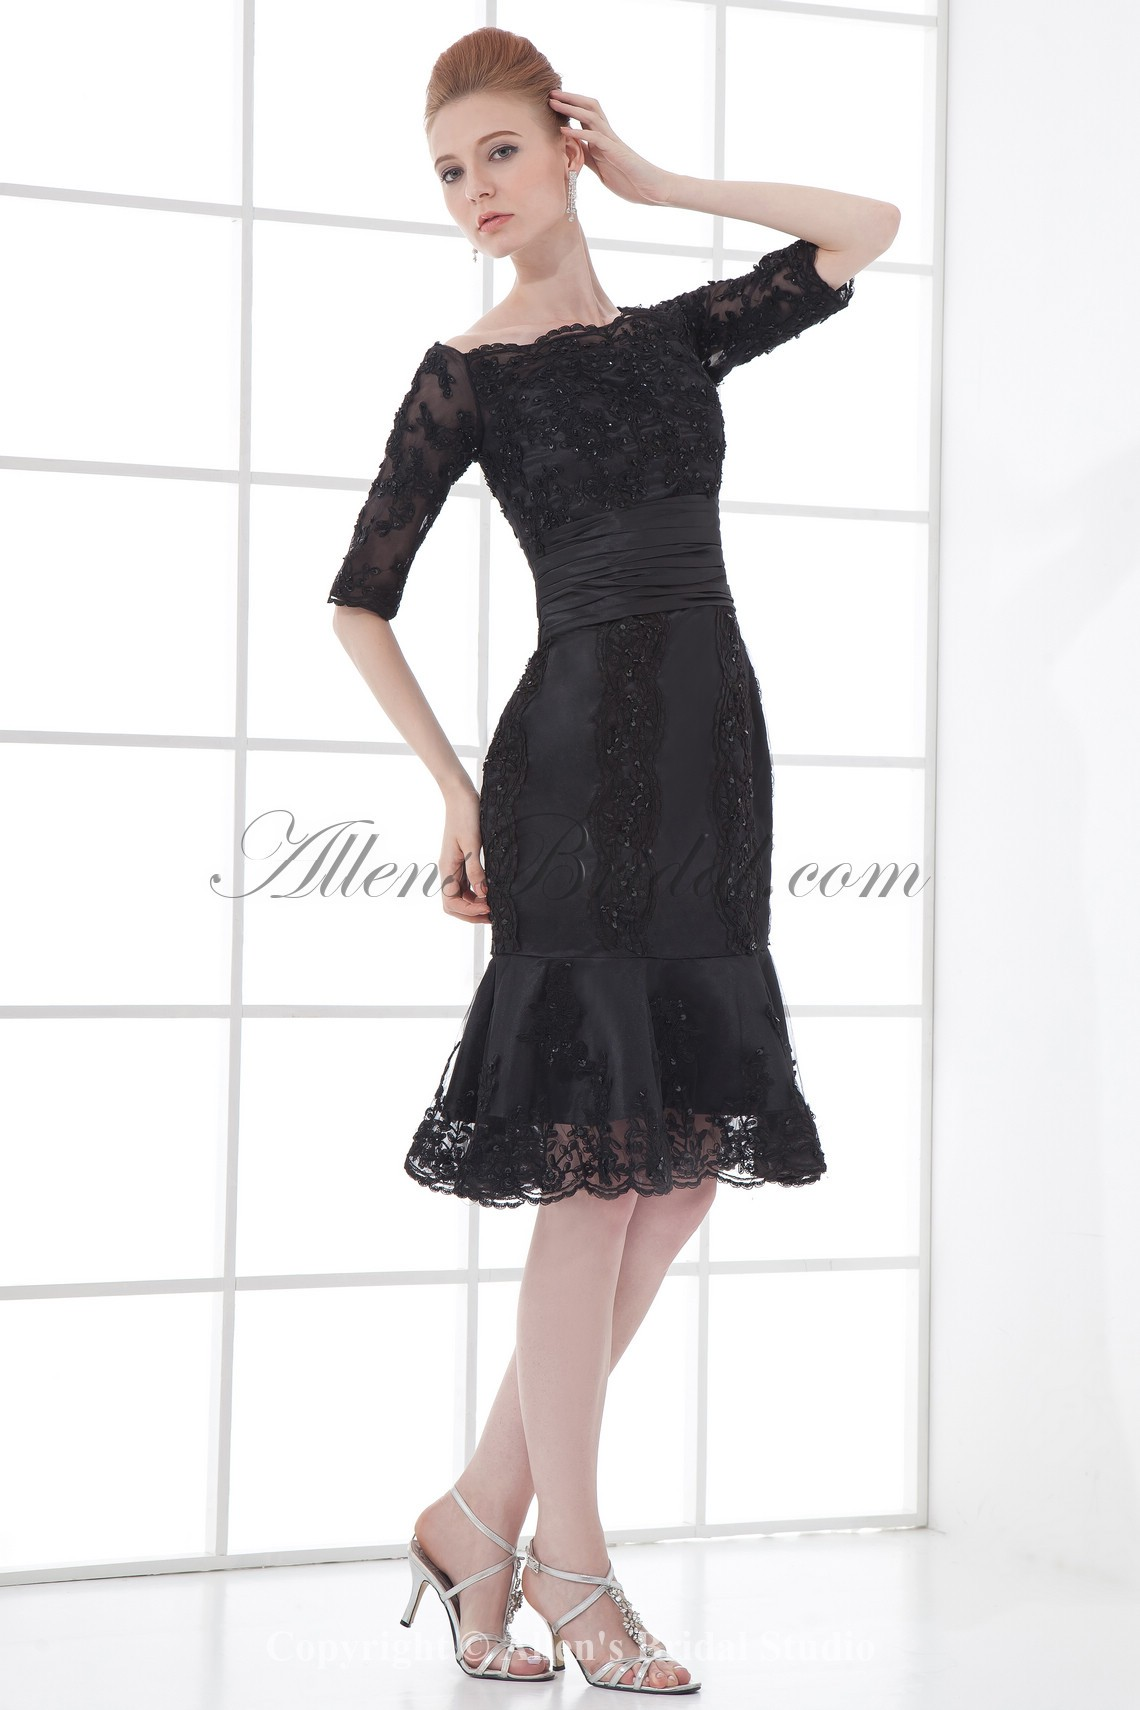 /75-597/lace-off-the-shoulder-neckline-sheath-knee-length-half-sleeves-cocktail-dress.jpg